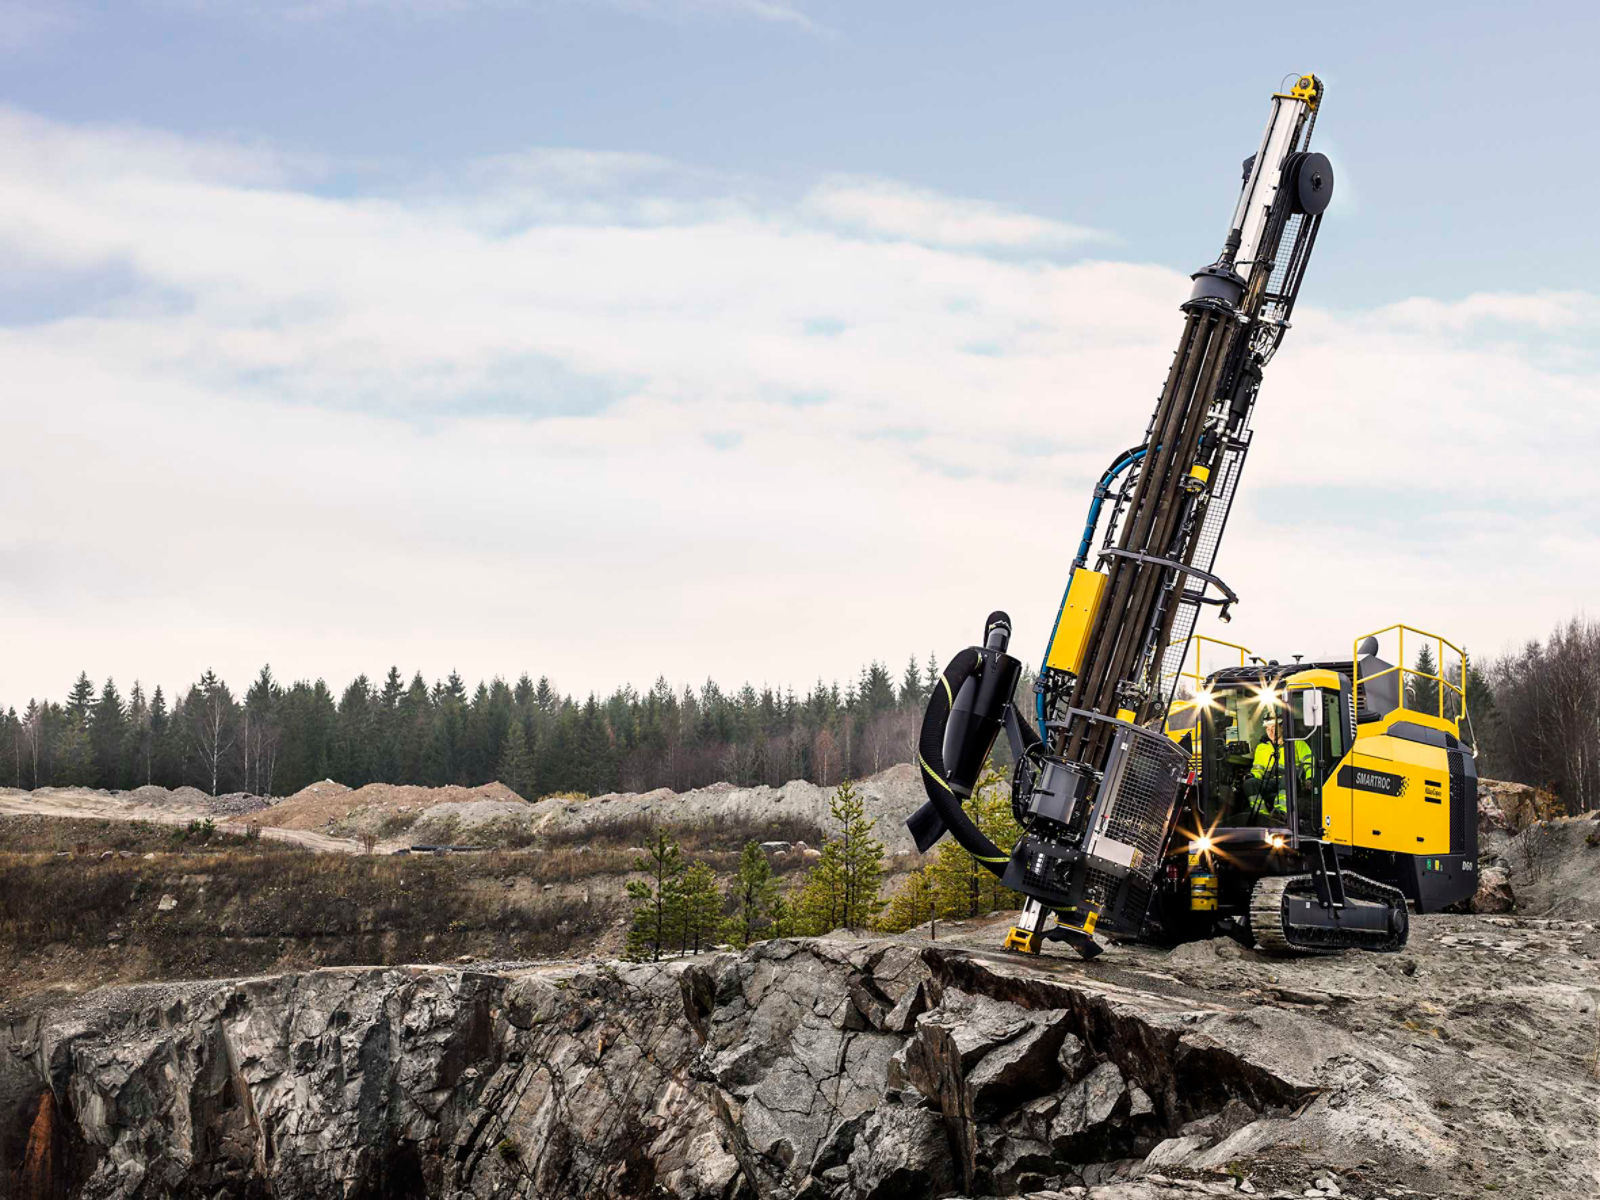 Atlas Copco lance le SmartROC D60, un engin de forage de surface adapté à la majorité des applications de forage de surface et aux conditions difficiles.